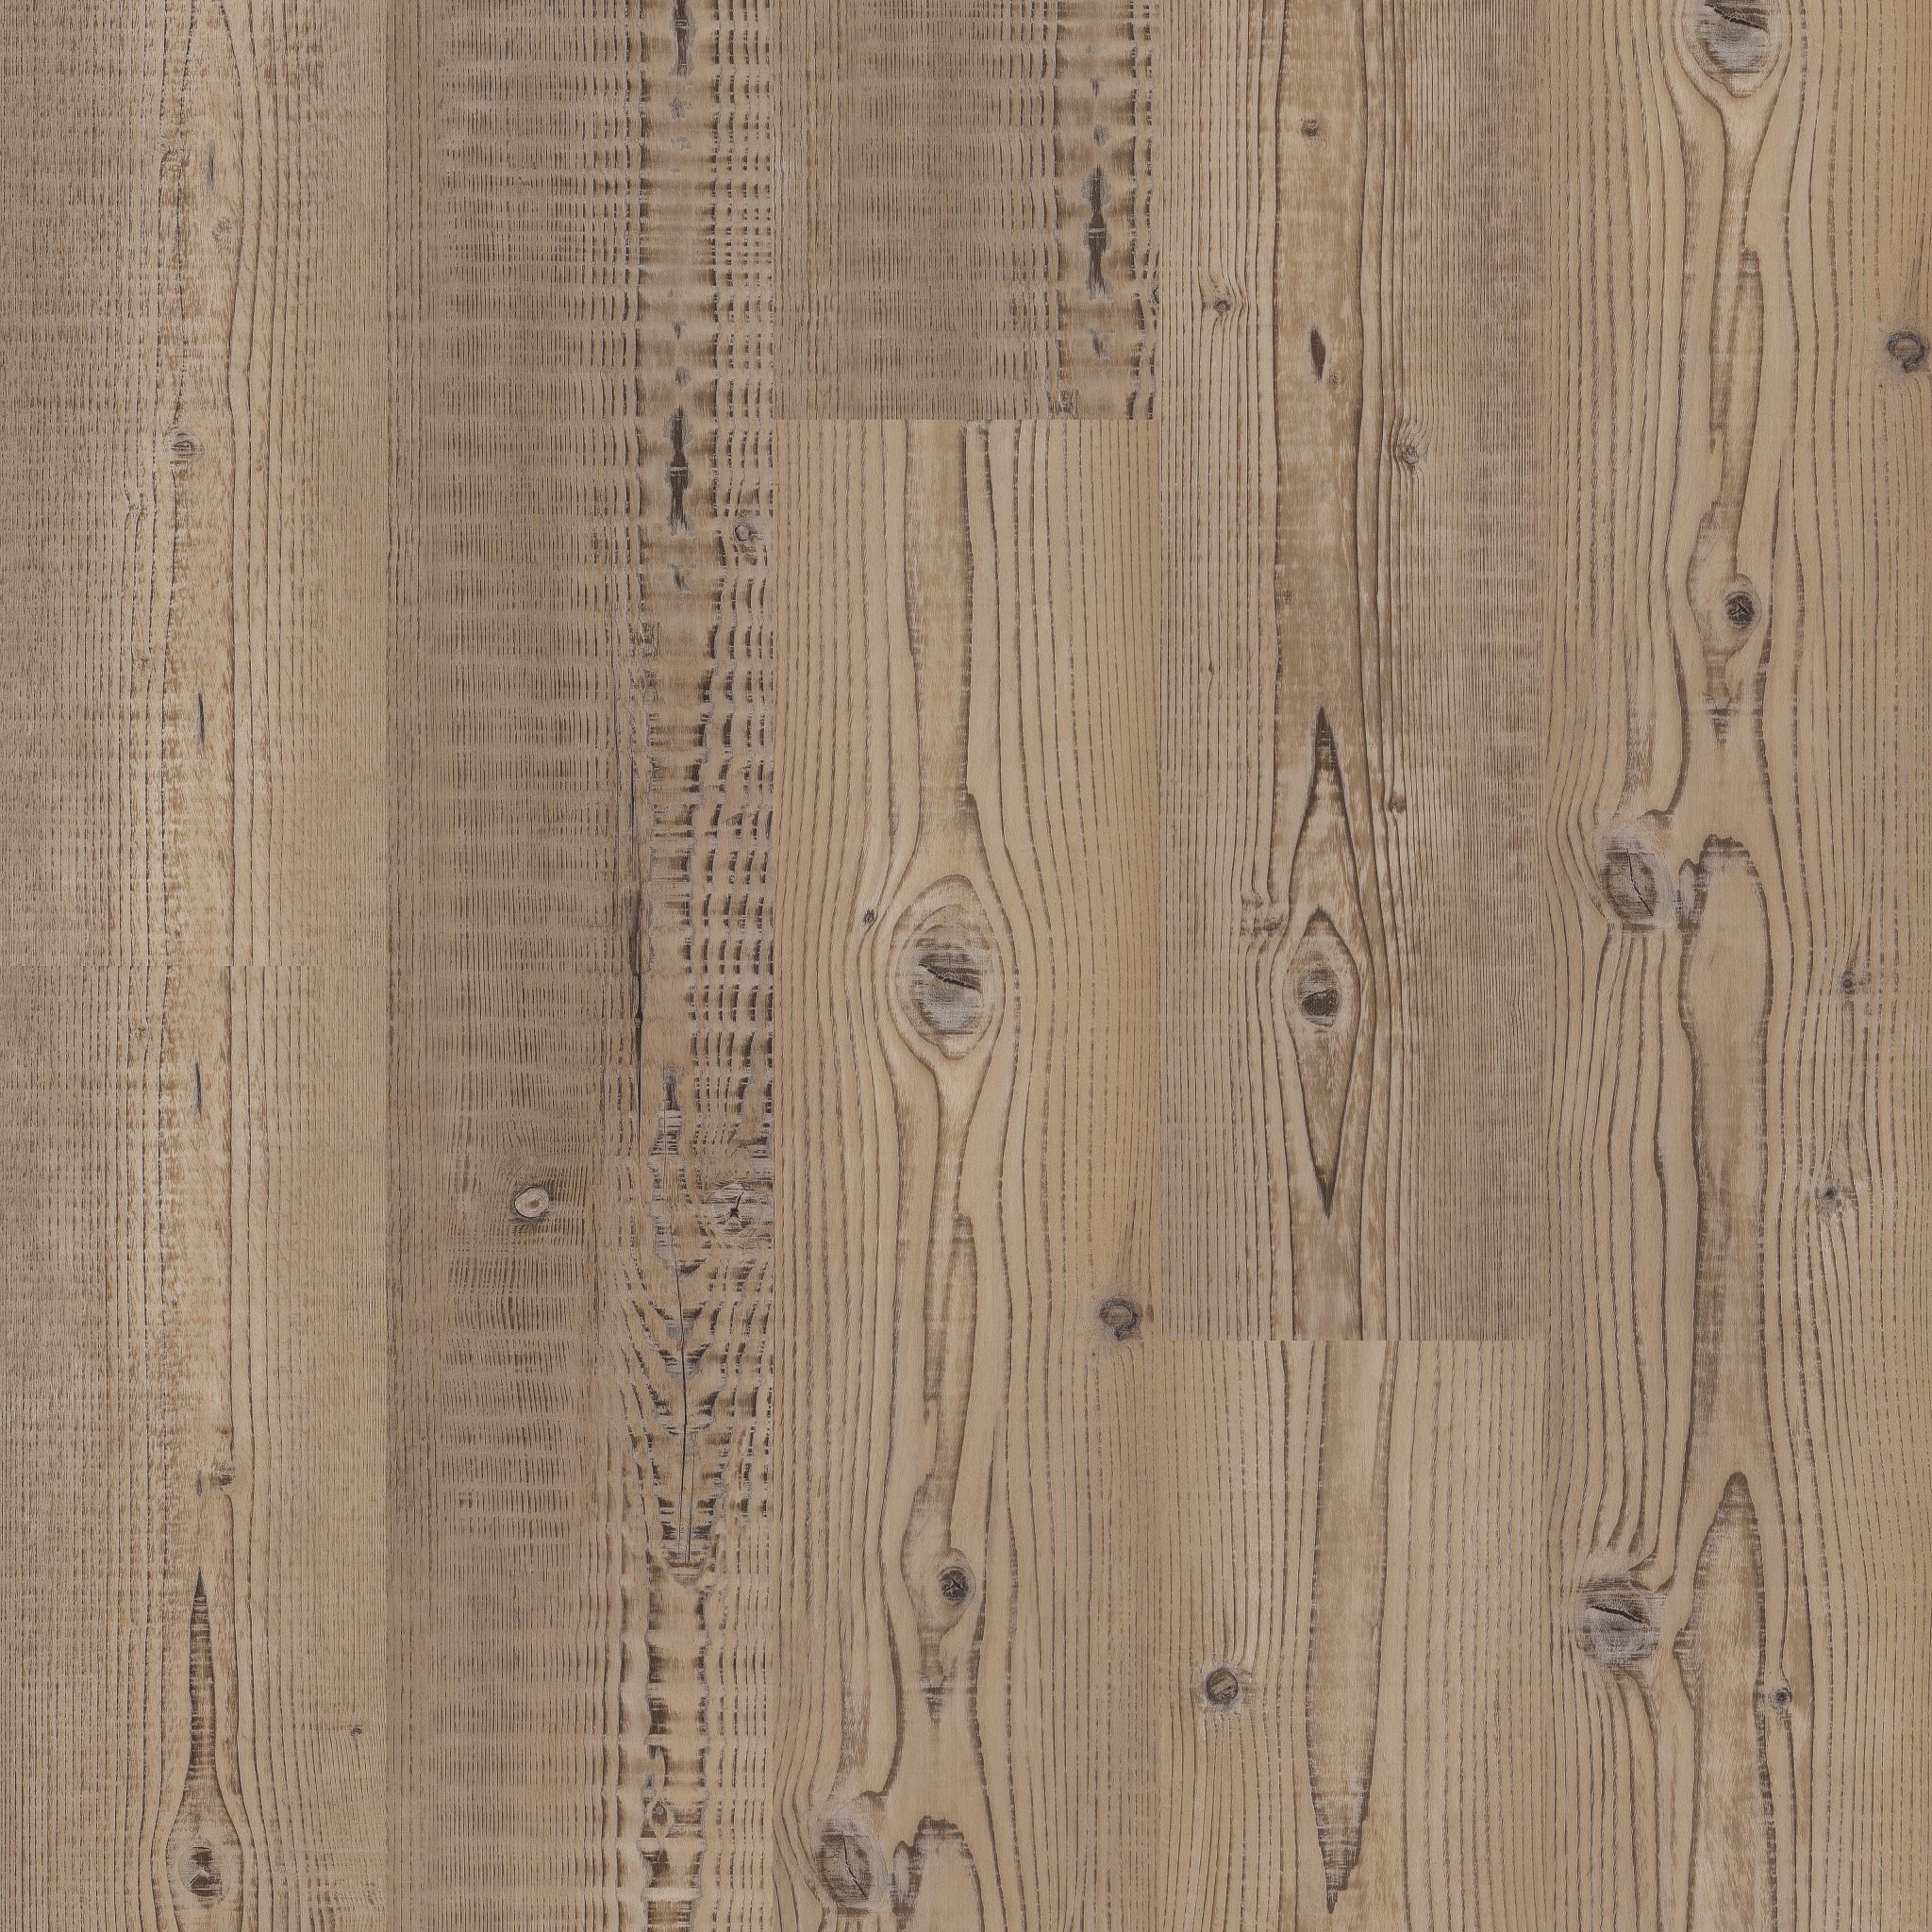 Style name and number: Anvil Plus 20 mil 2357V and color name and number: Accent Pine 07063